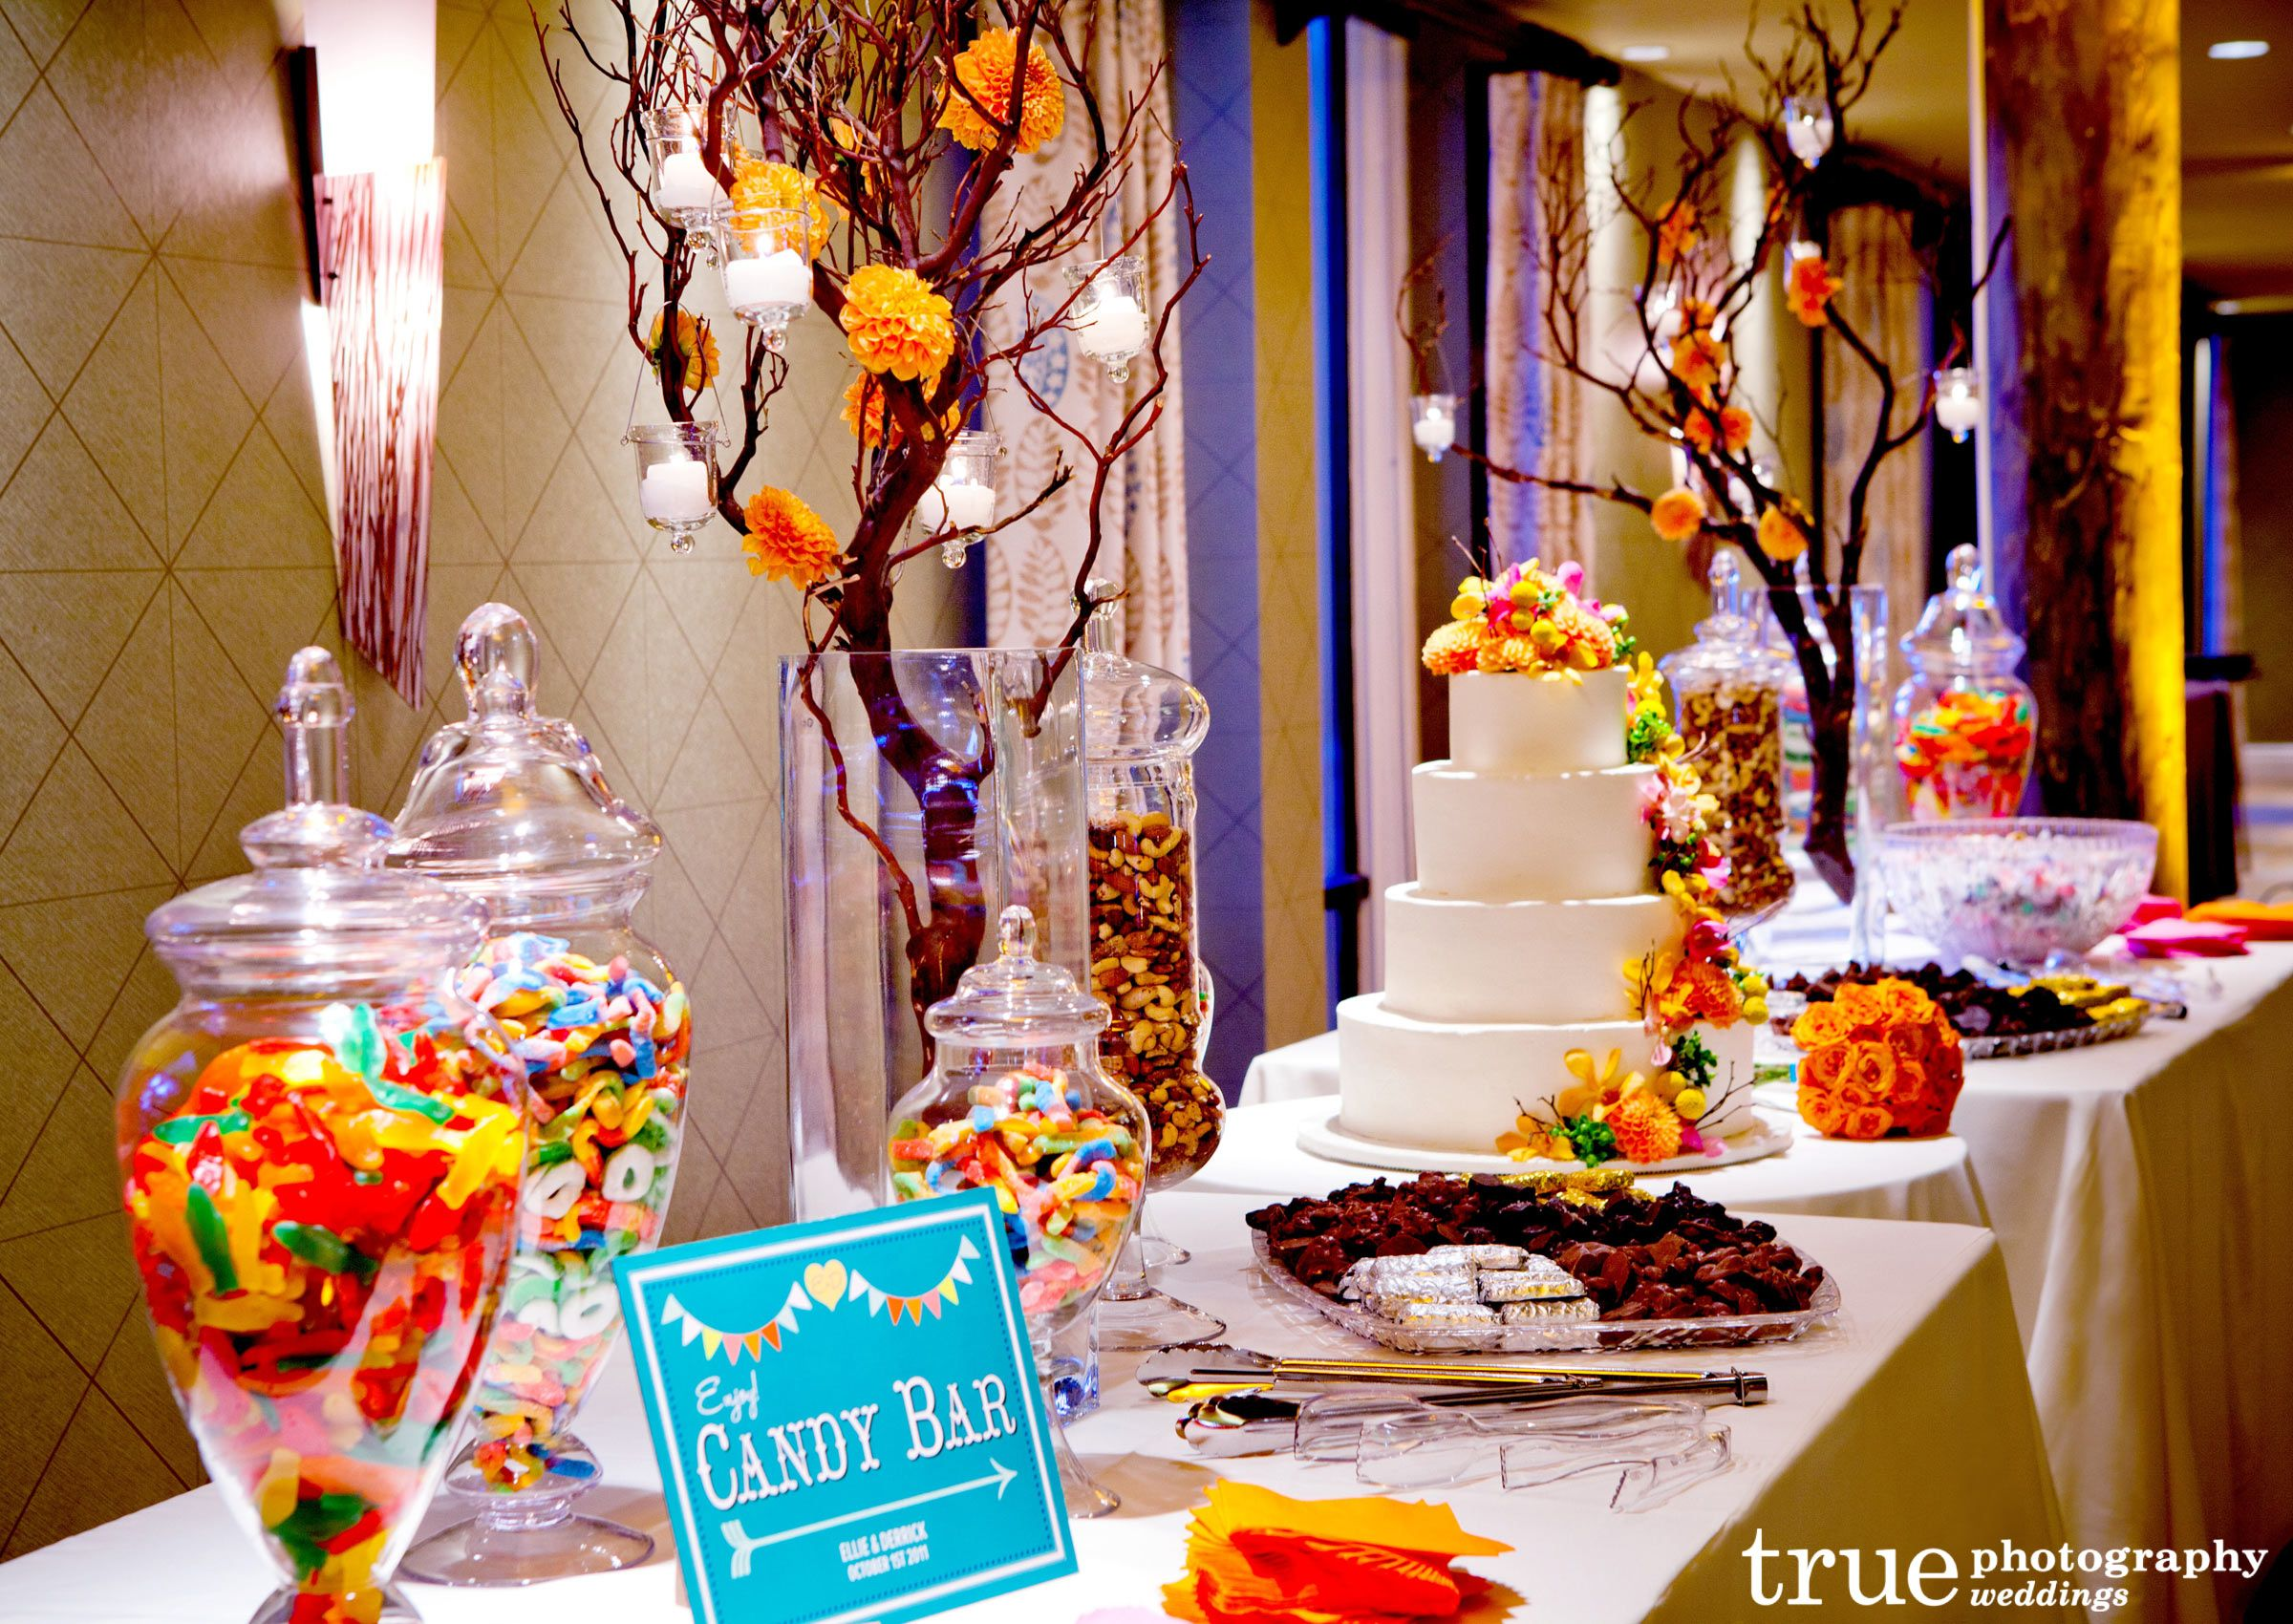 wedding candy bar google search bake sale items